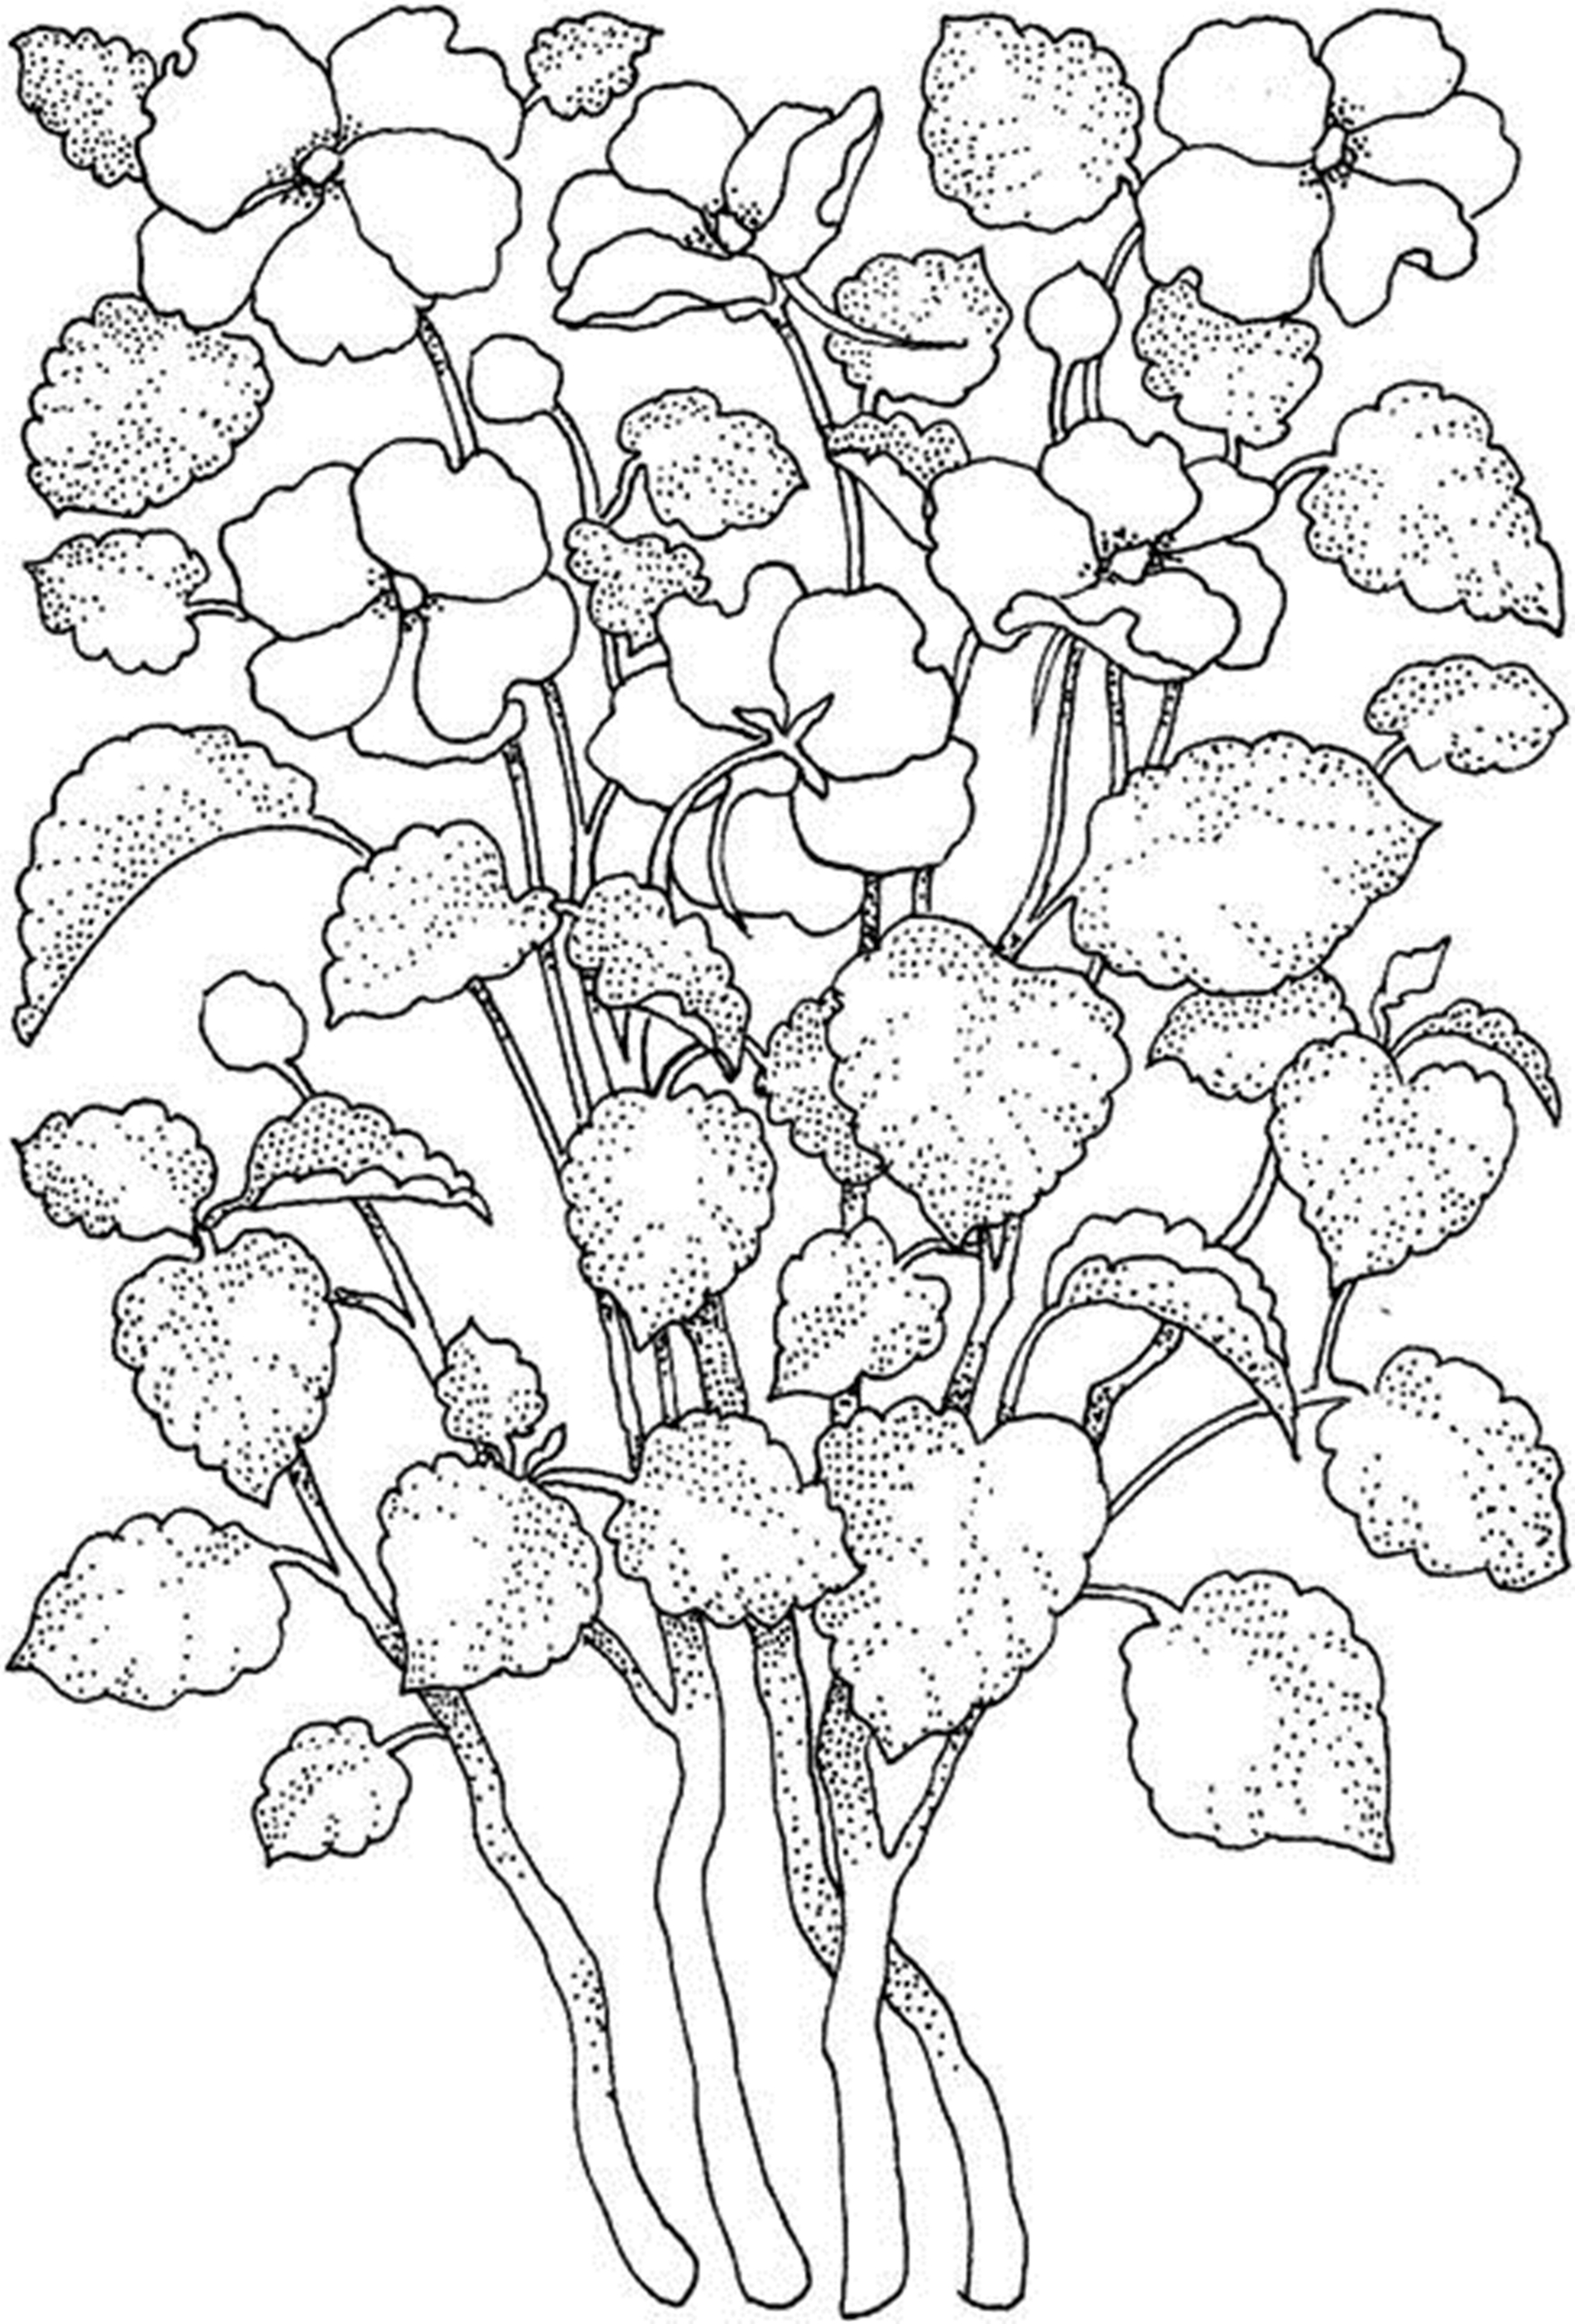 coloring flowers for adults adult flowers coloring page gladiolus the graphics fairy adults for flowers coloring